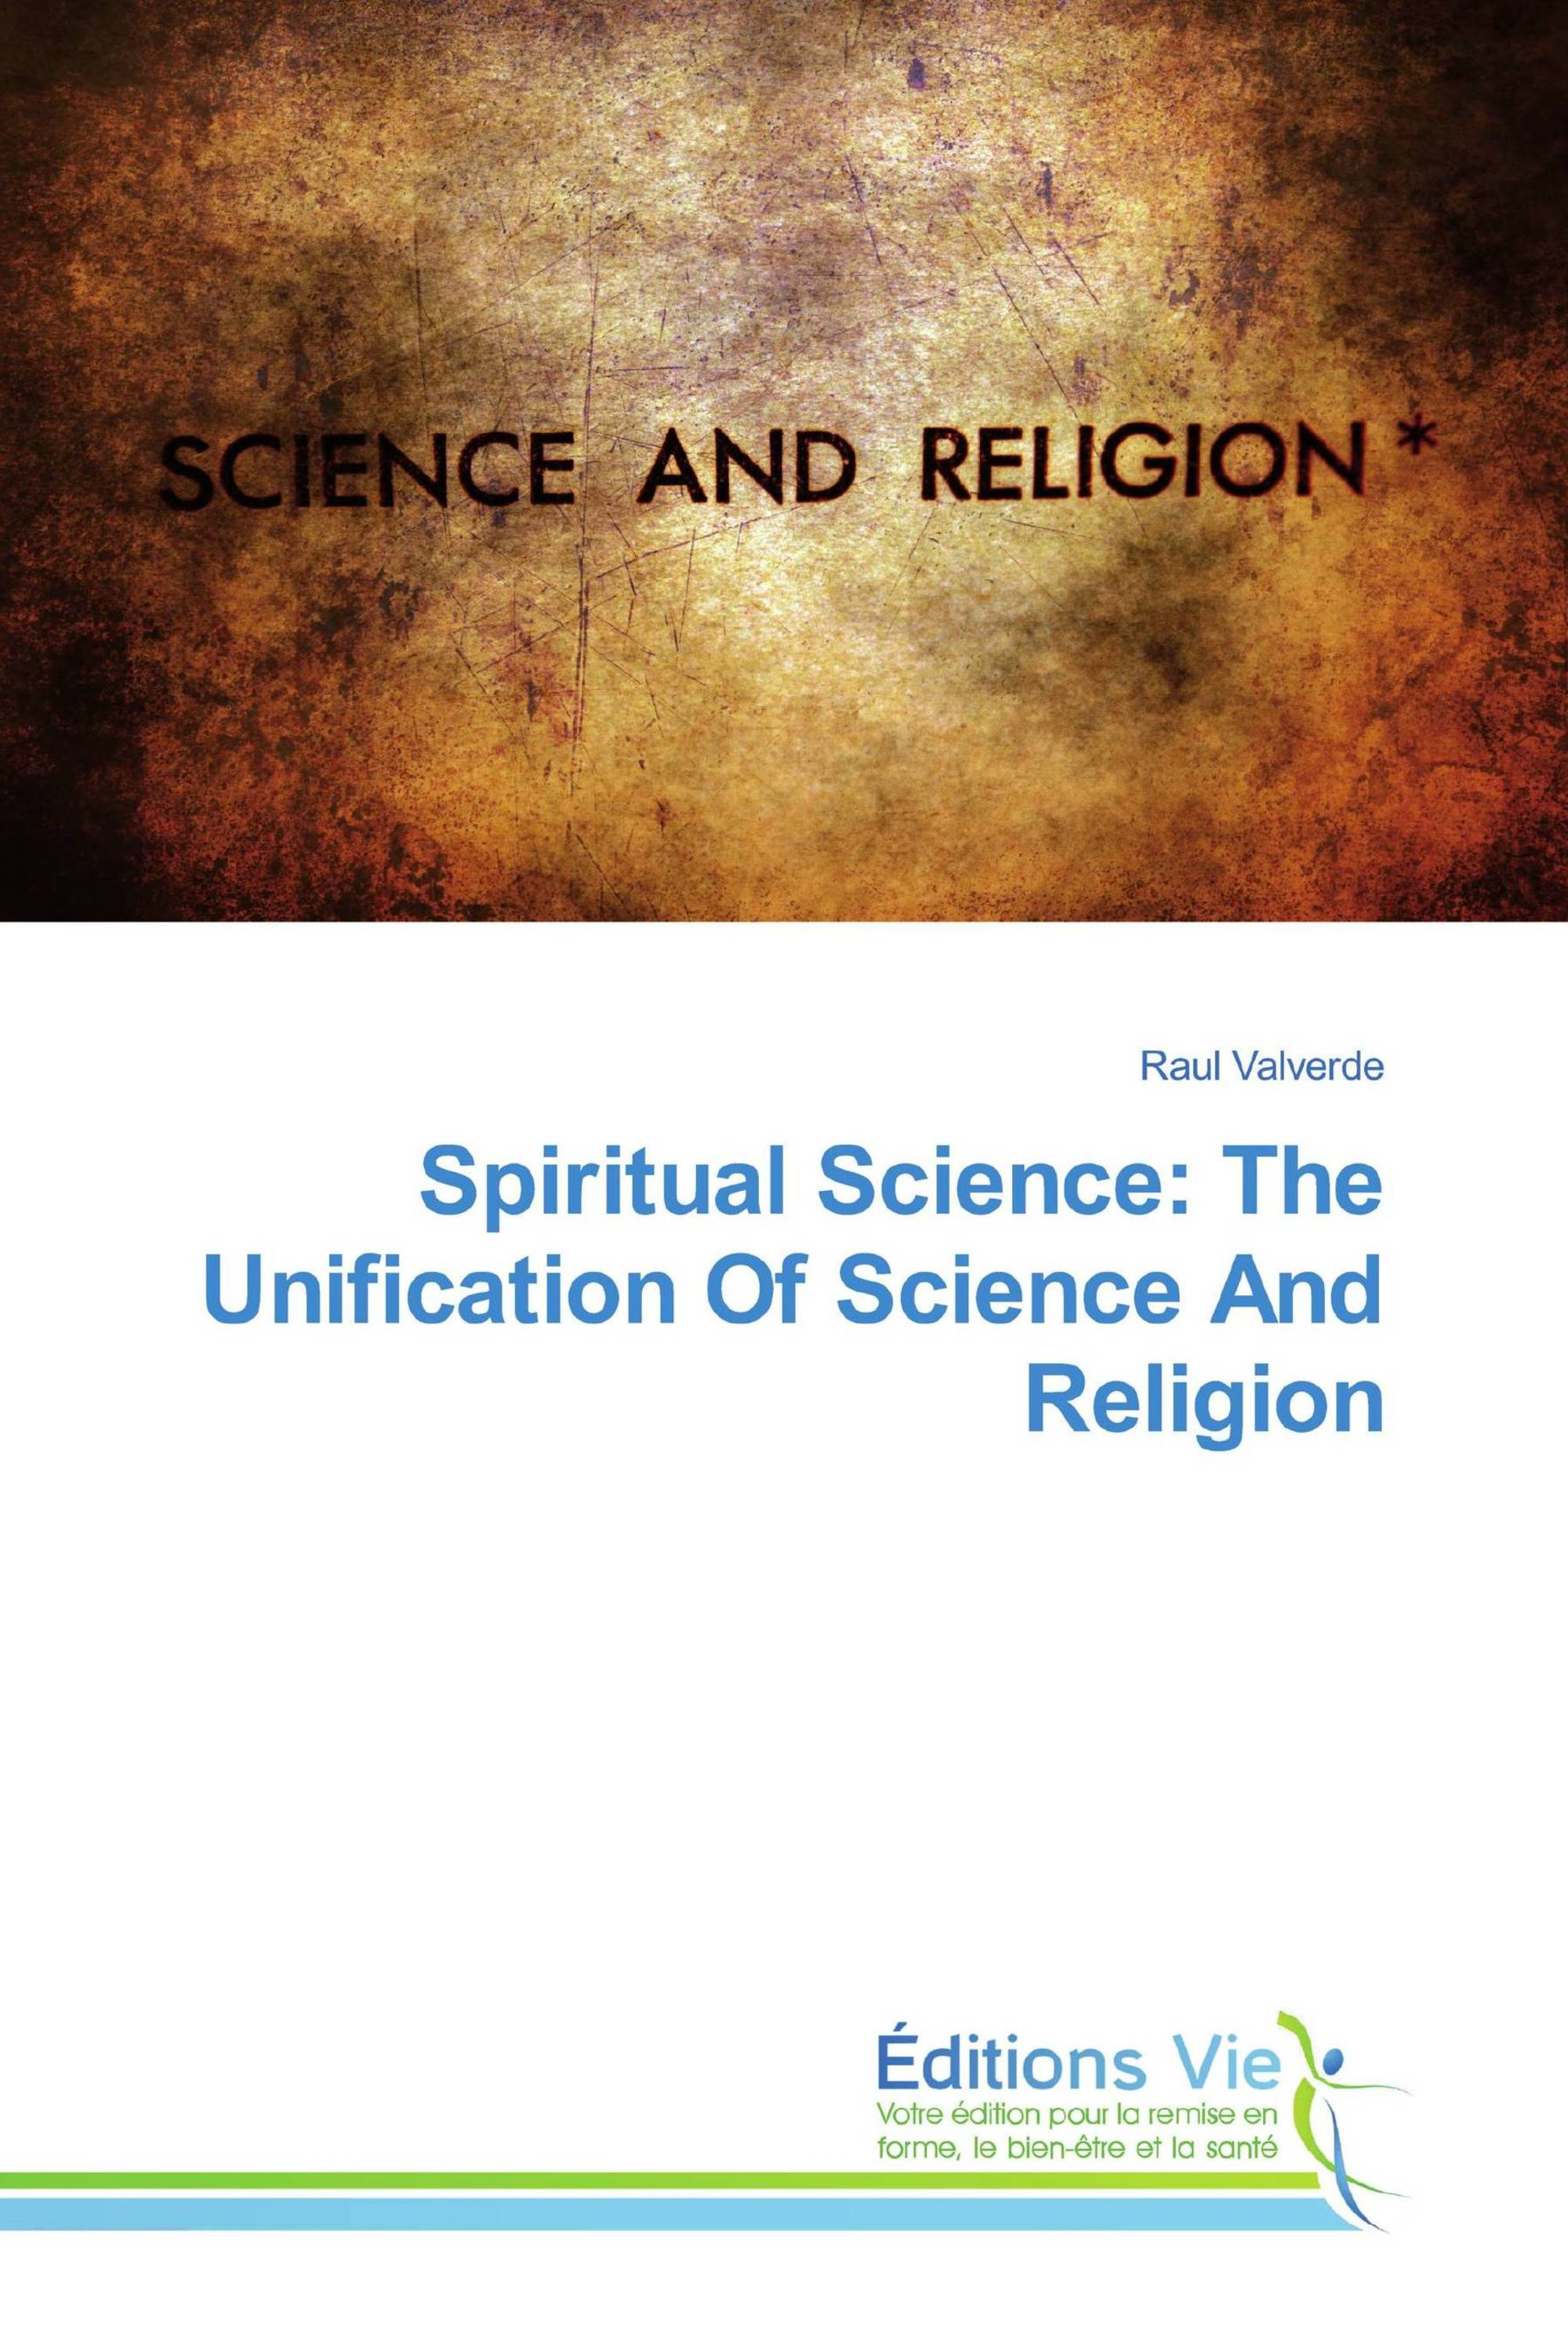 Spiritual Science: The Unification Of Science And Religion